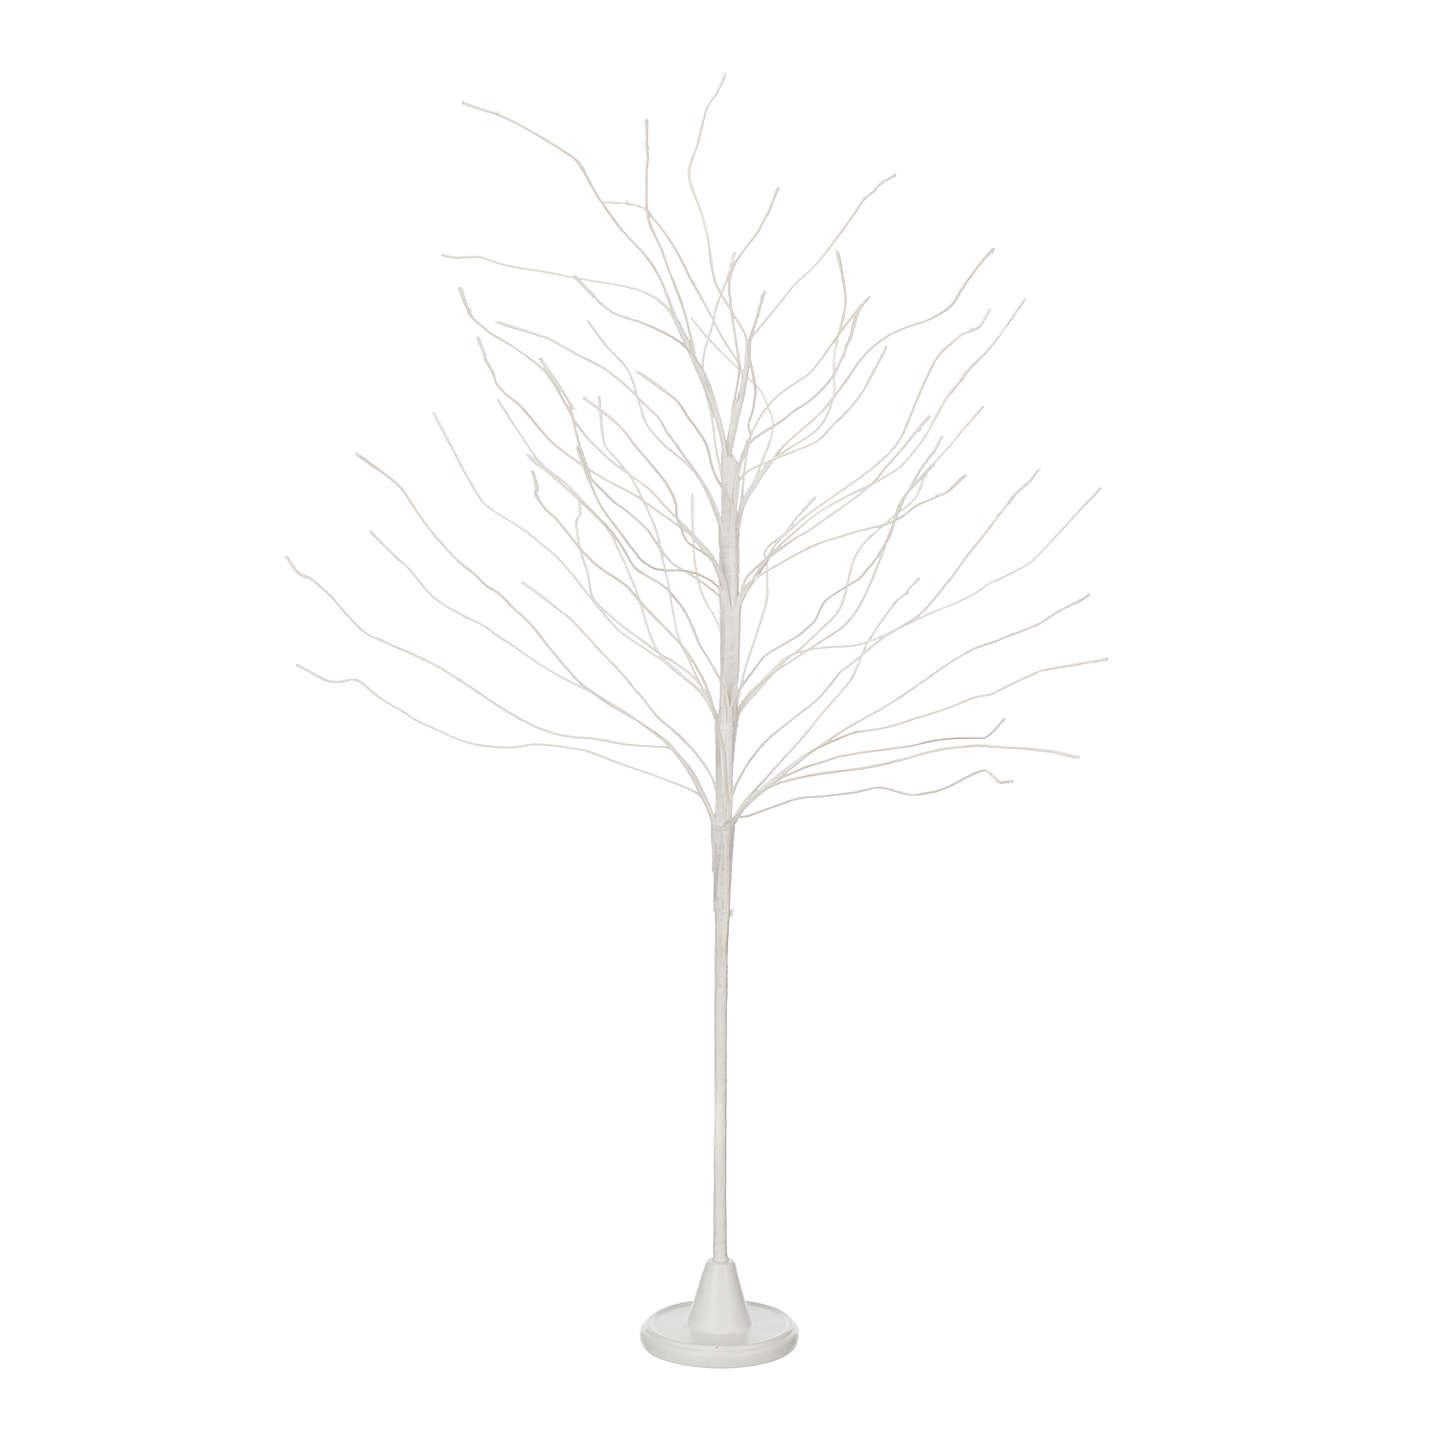 with tree stock illustration free vector royalty leafs designs from images decorative decor